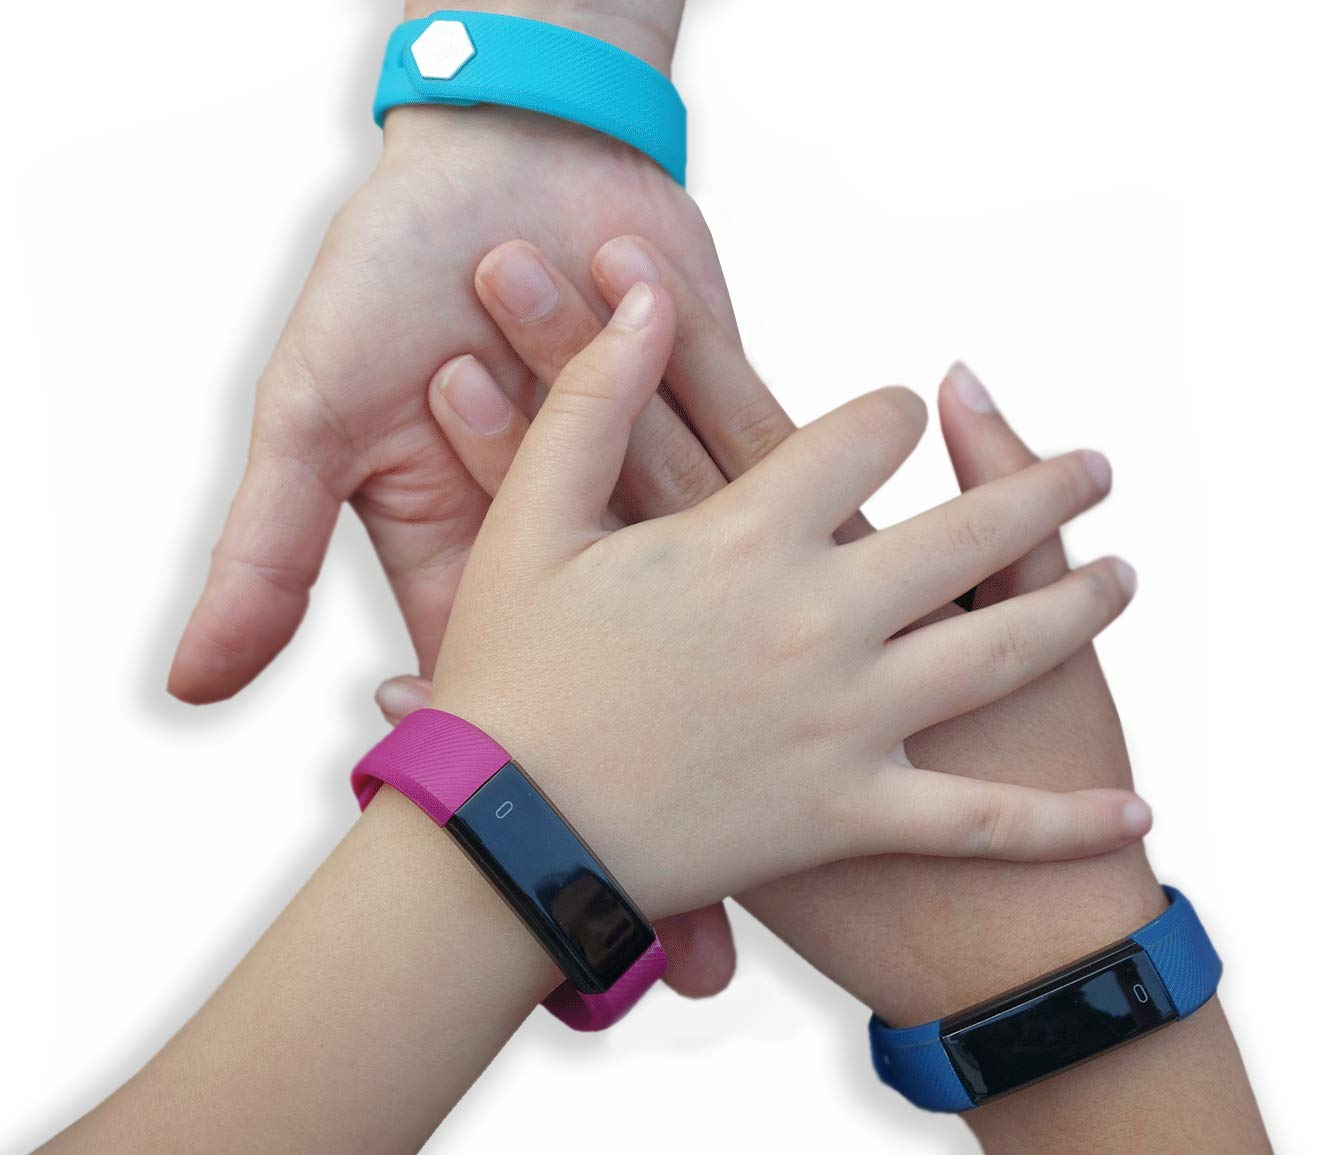 TRENDY PRO Kids Fitness Tracker for Kids Activity Tracker